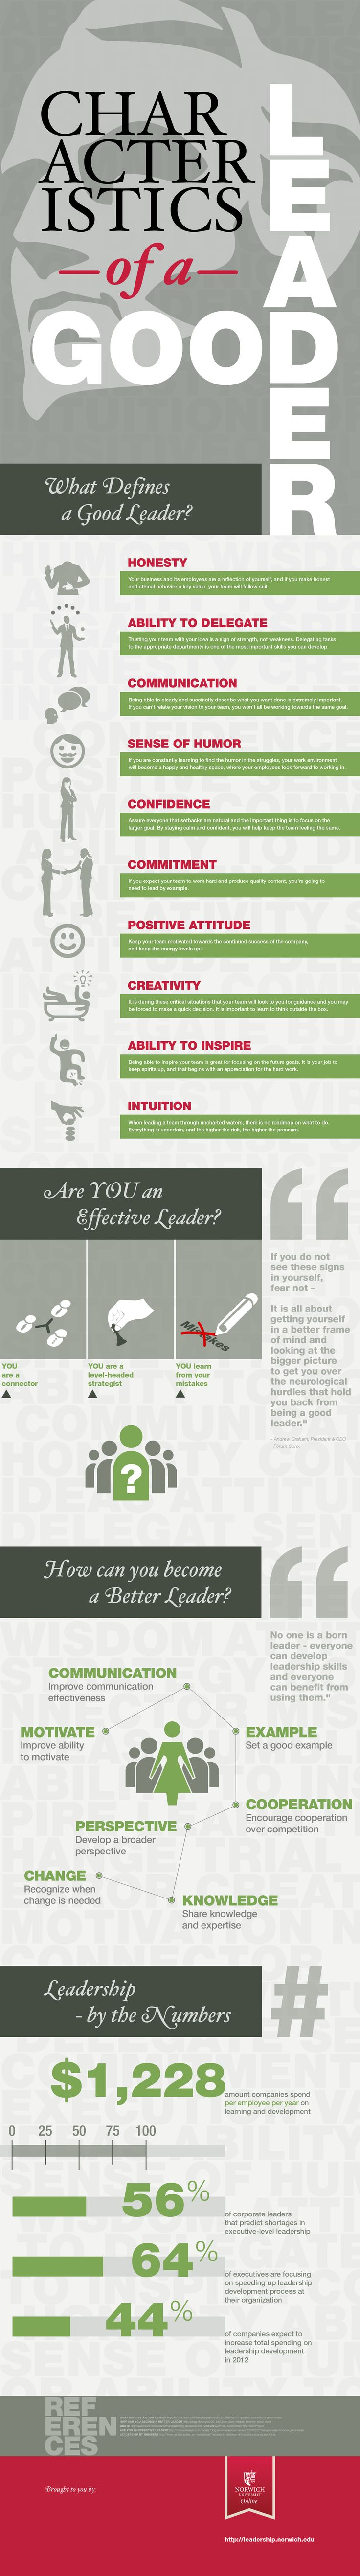 Characteristics Of A Good Leader #Infographic #Business #Leader